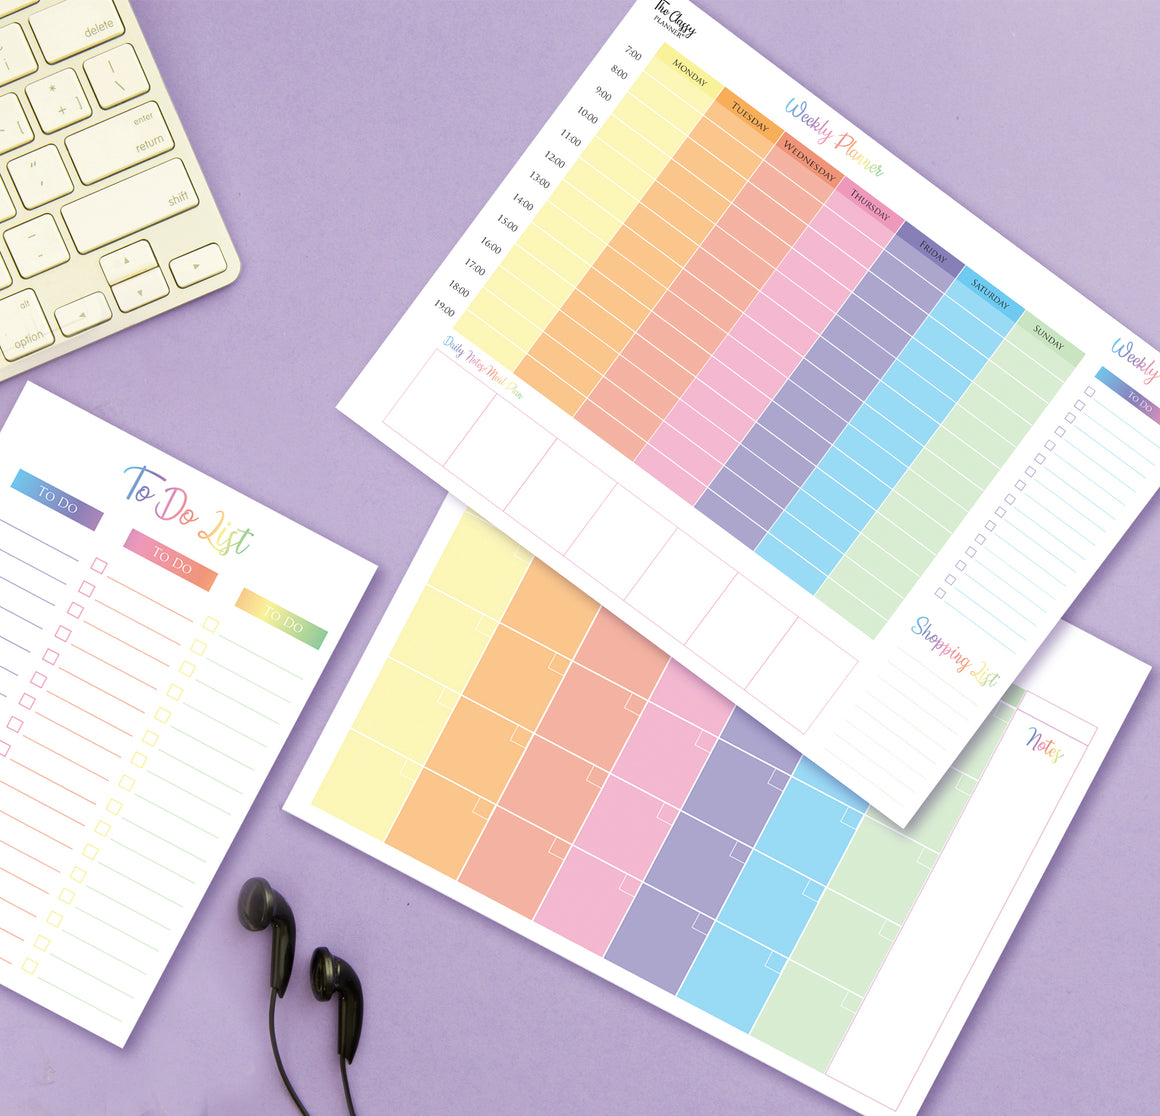 Colourful Weekly & Monthly Desktop Planner Pad Bundle with FREE To Do List Included